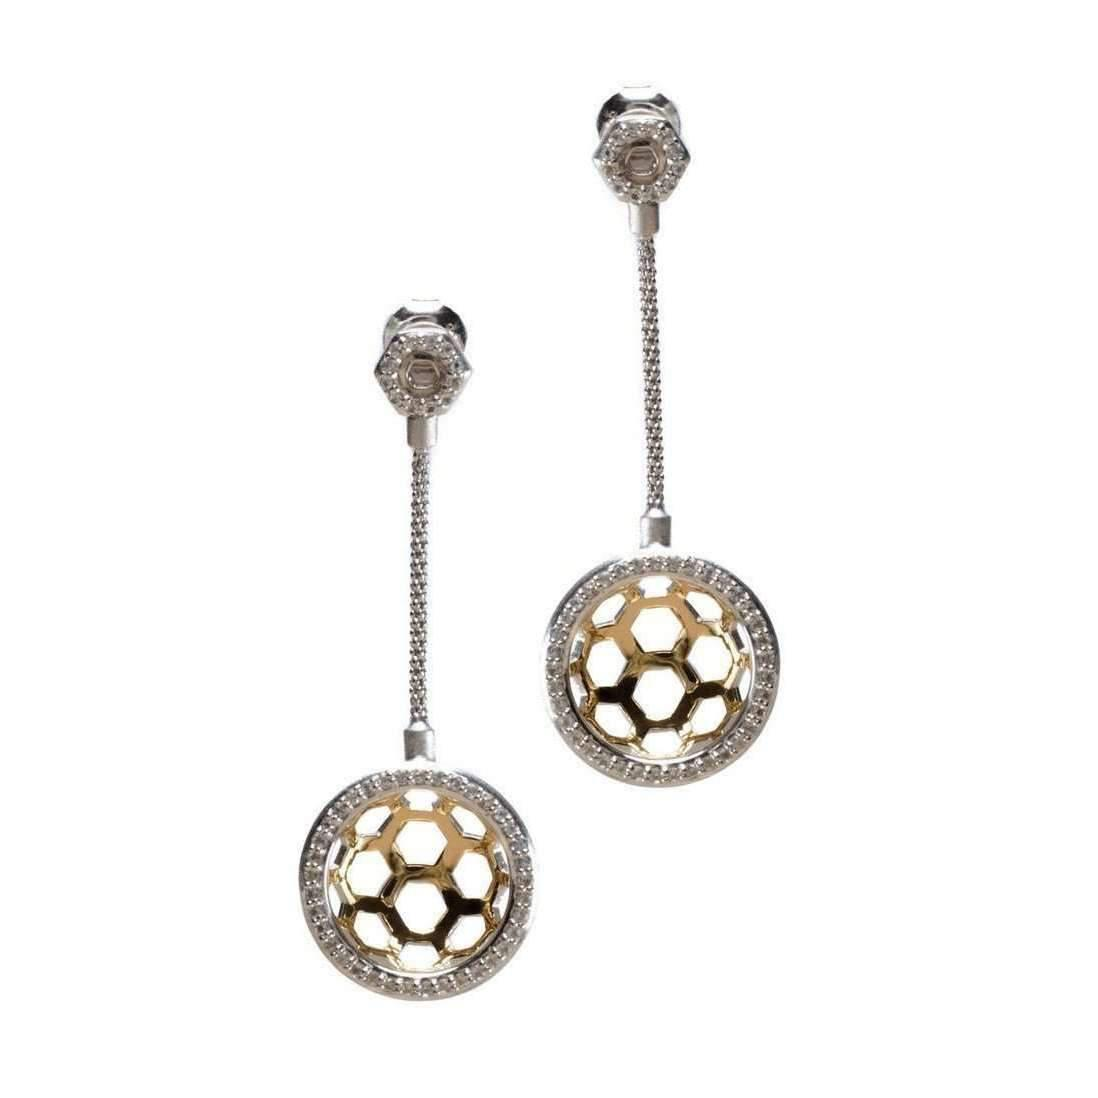 Gia Belloni Gold And Silver Aeon Earrings xKXtW